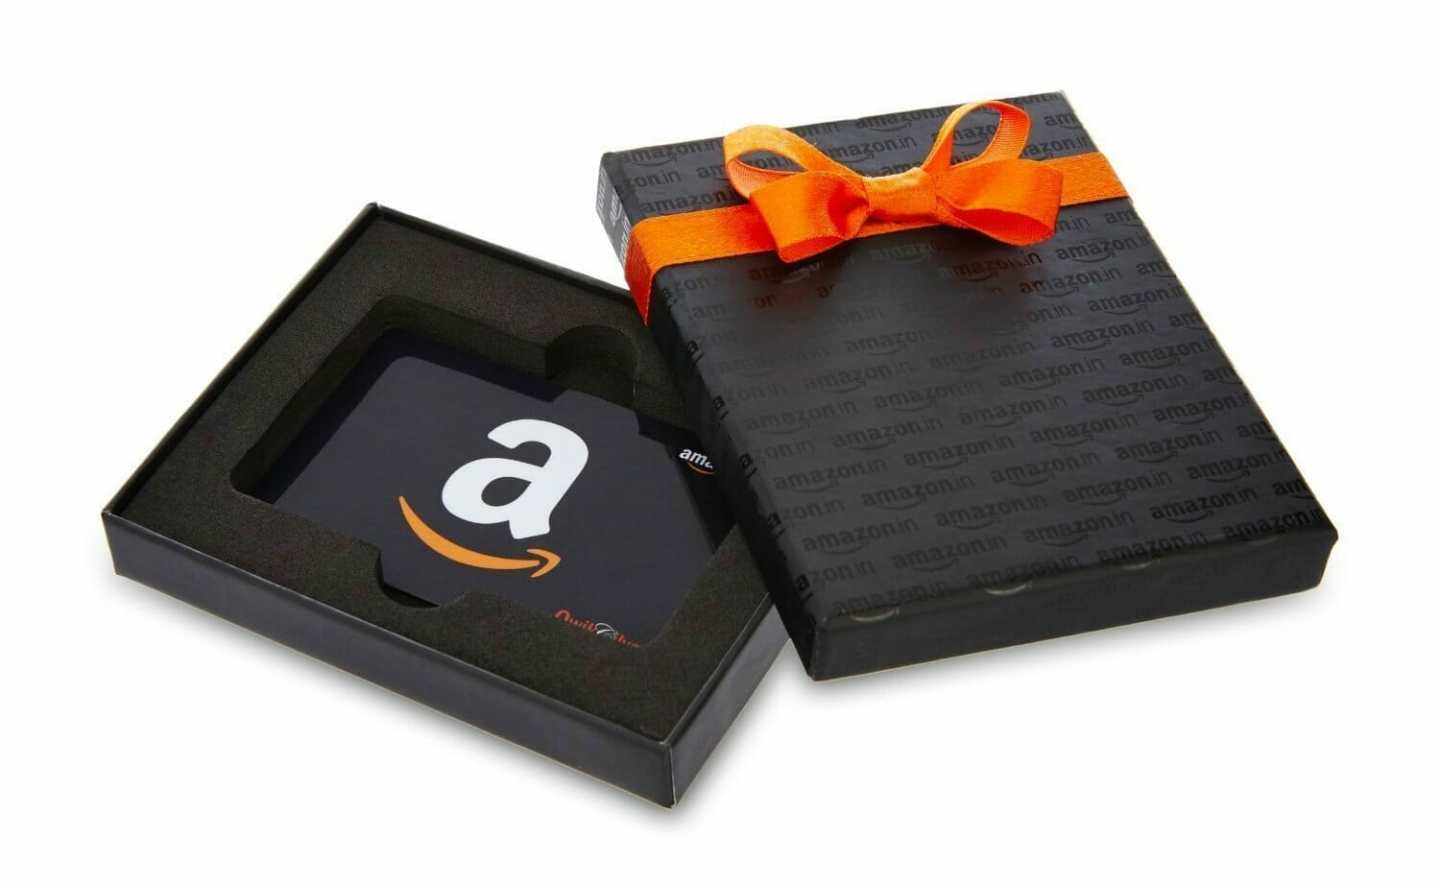 GIVEAWAY: Amazon Gift Card Worth $50